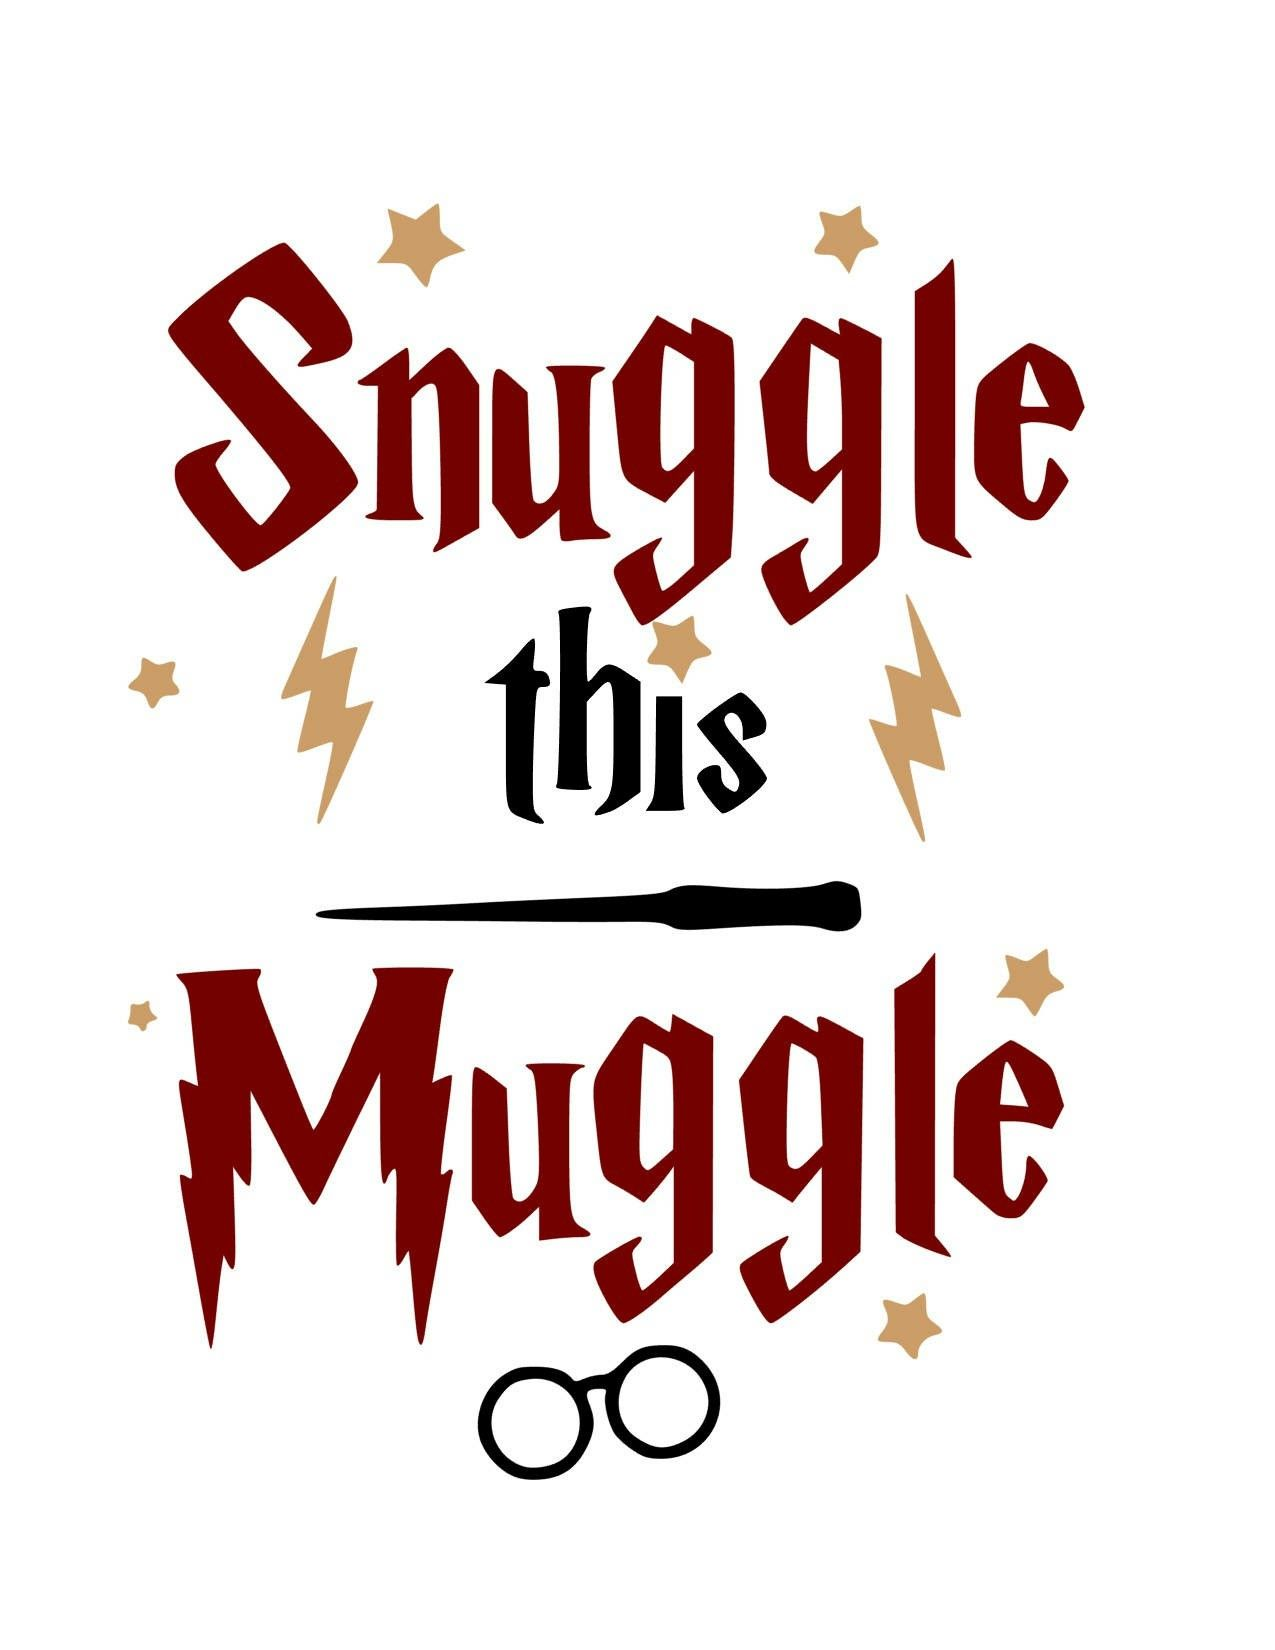 harry potter svg free #629, Download drawings